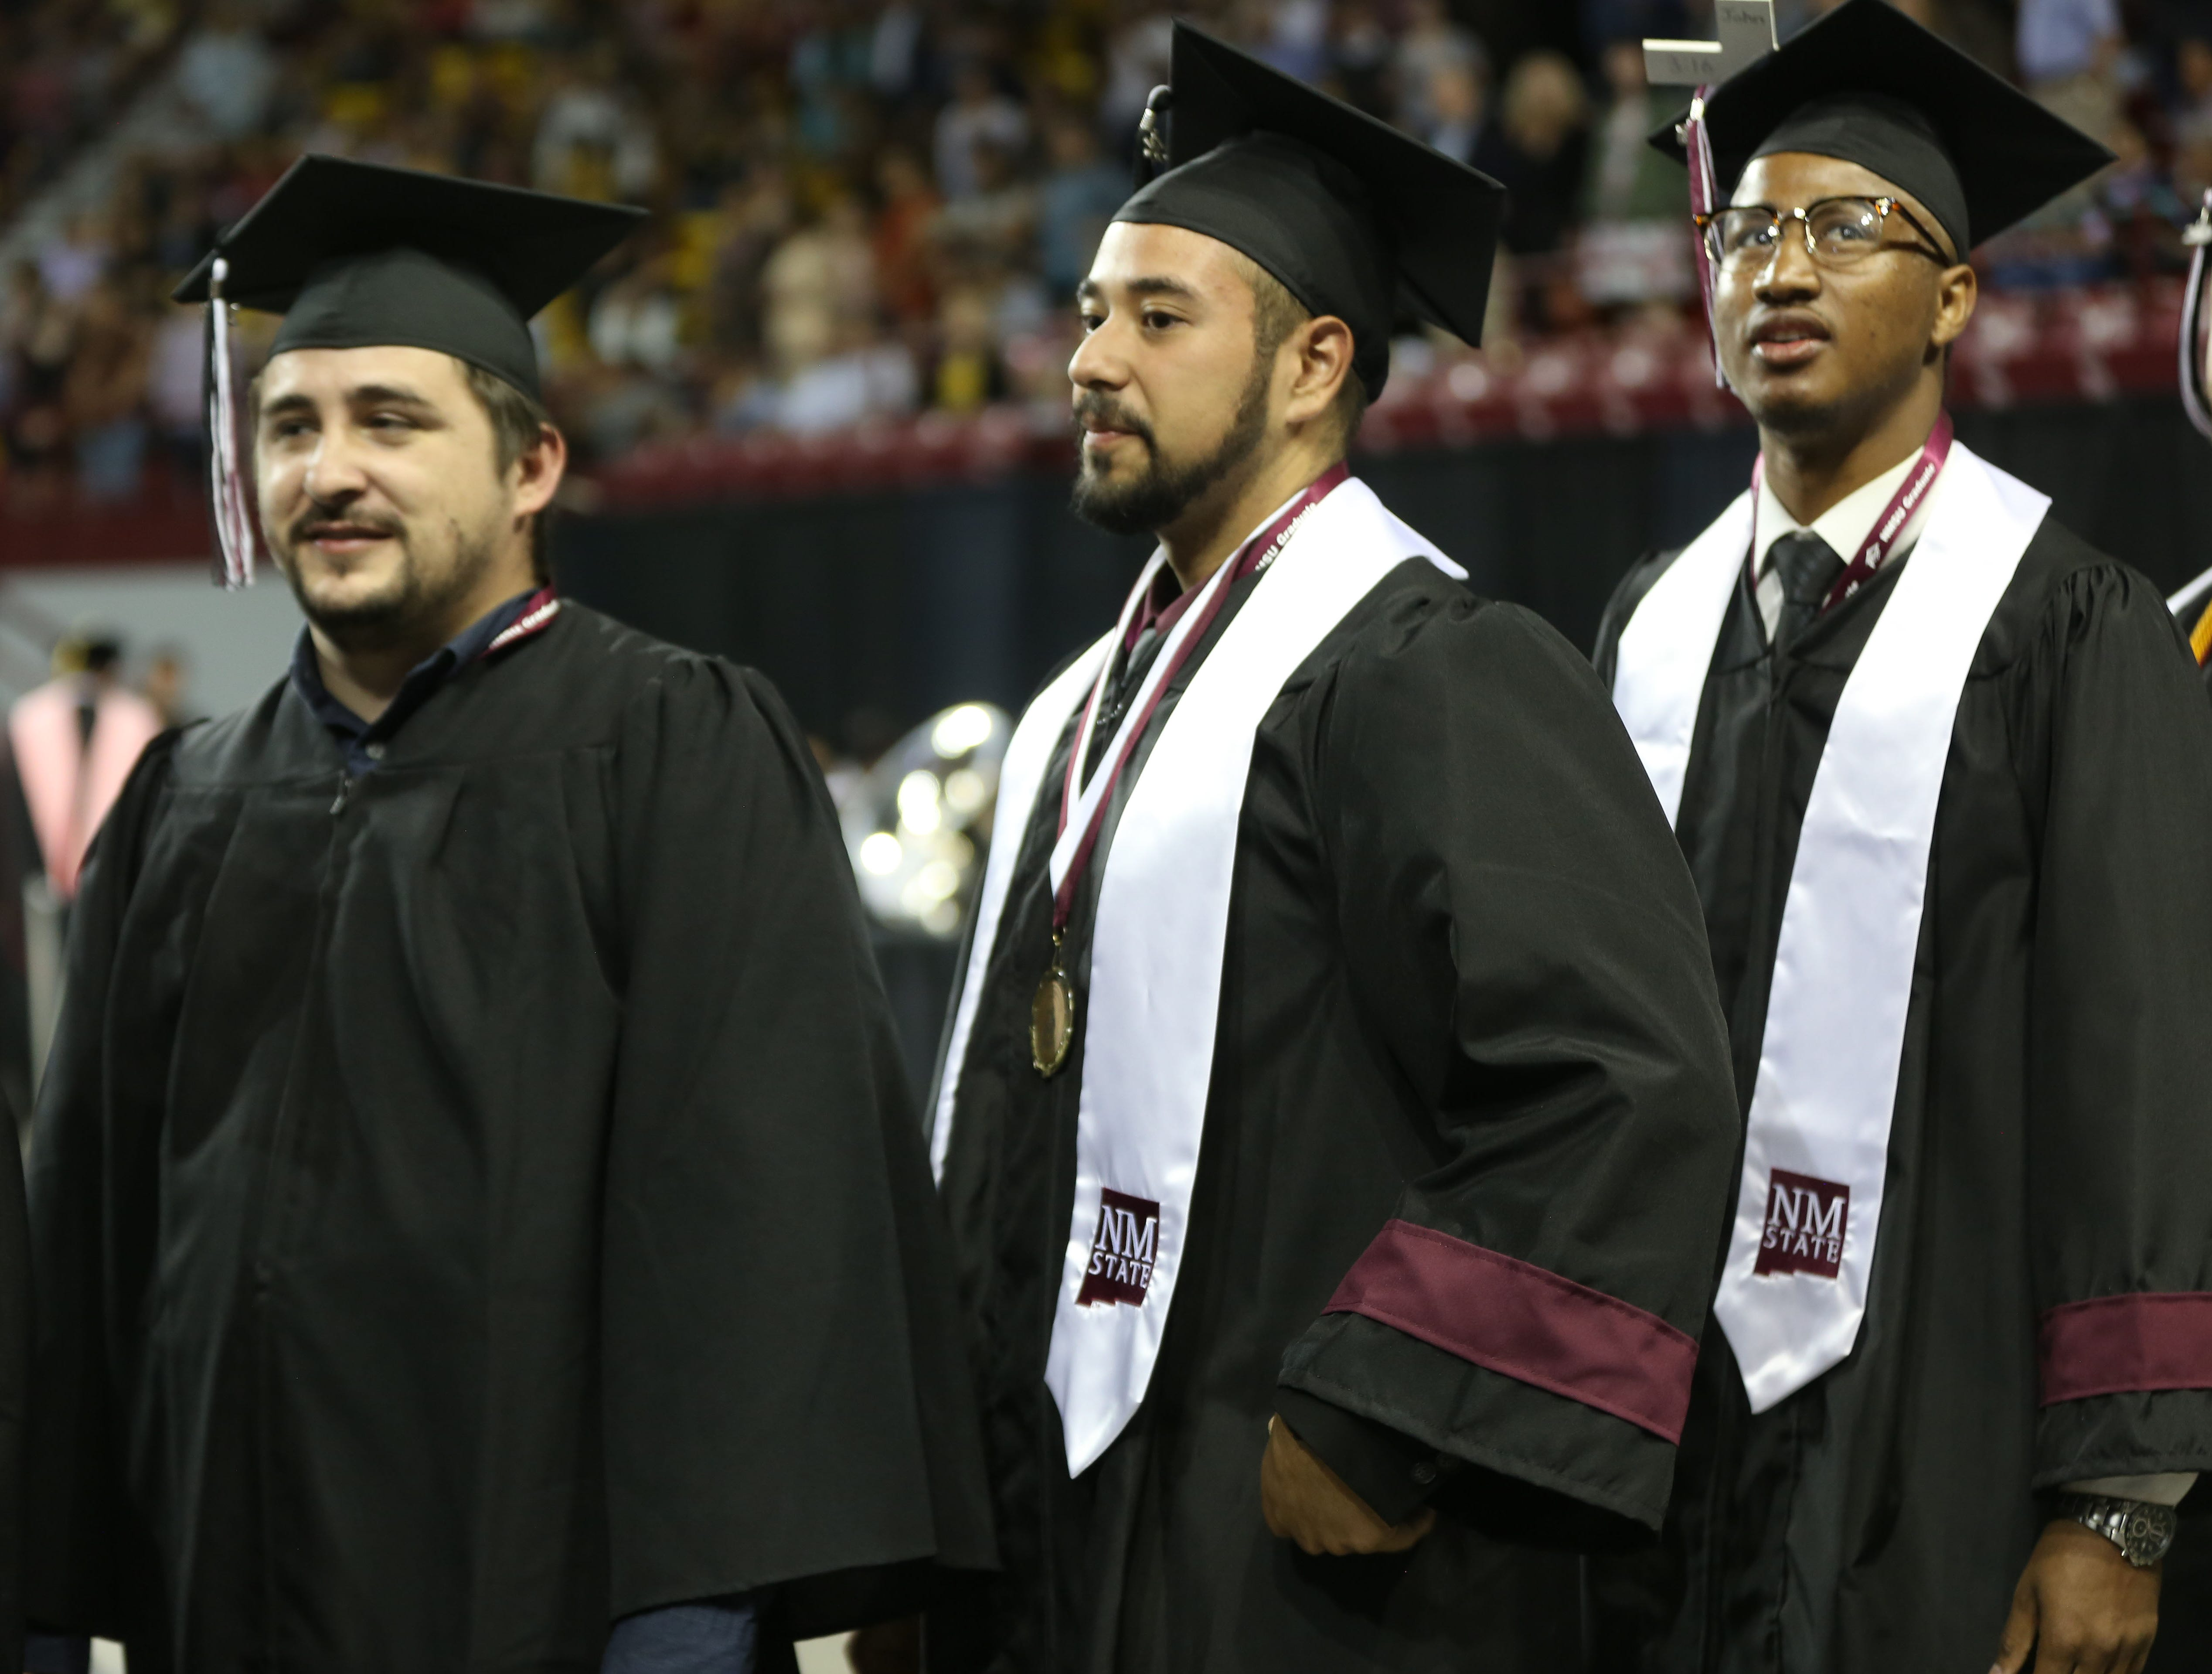 New Mexico State University students enter the stadium for their graduation ceremony, Saturday May 11, 2019.